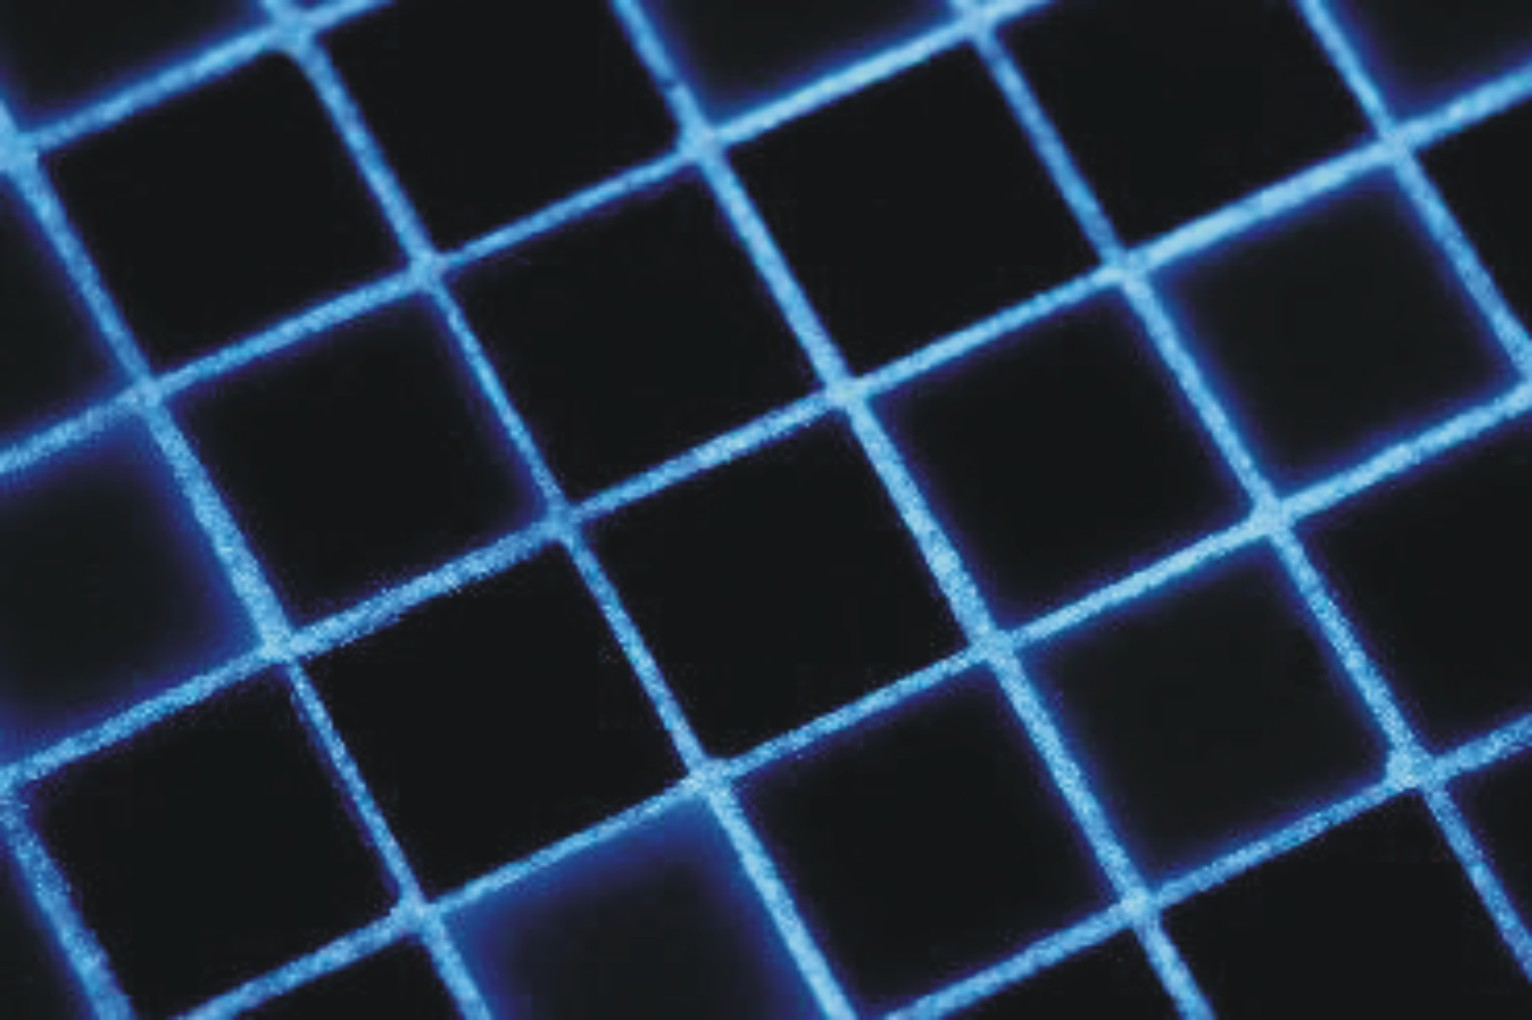 FAIRSCREED TG GLOW A RESIN BASED TILE GROUT PRODUCT GLOWS